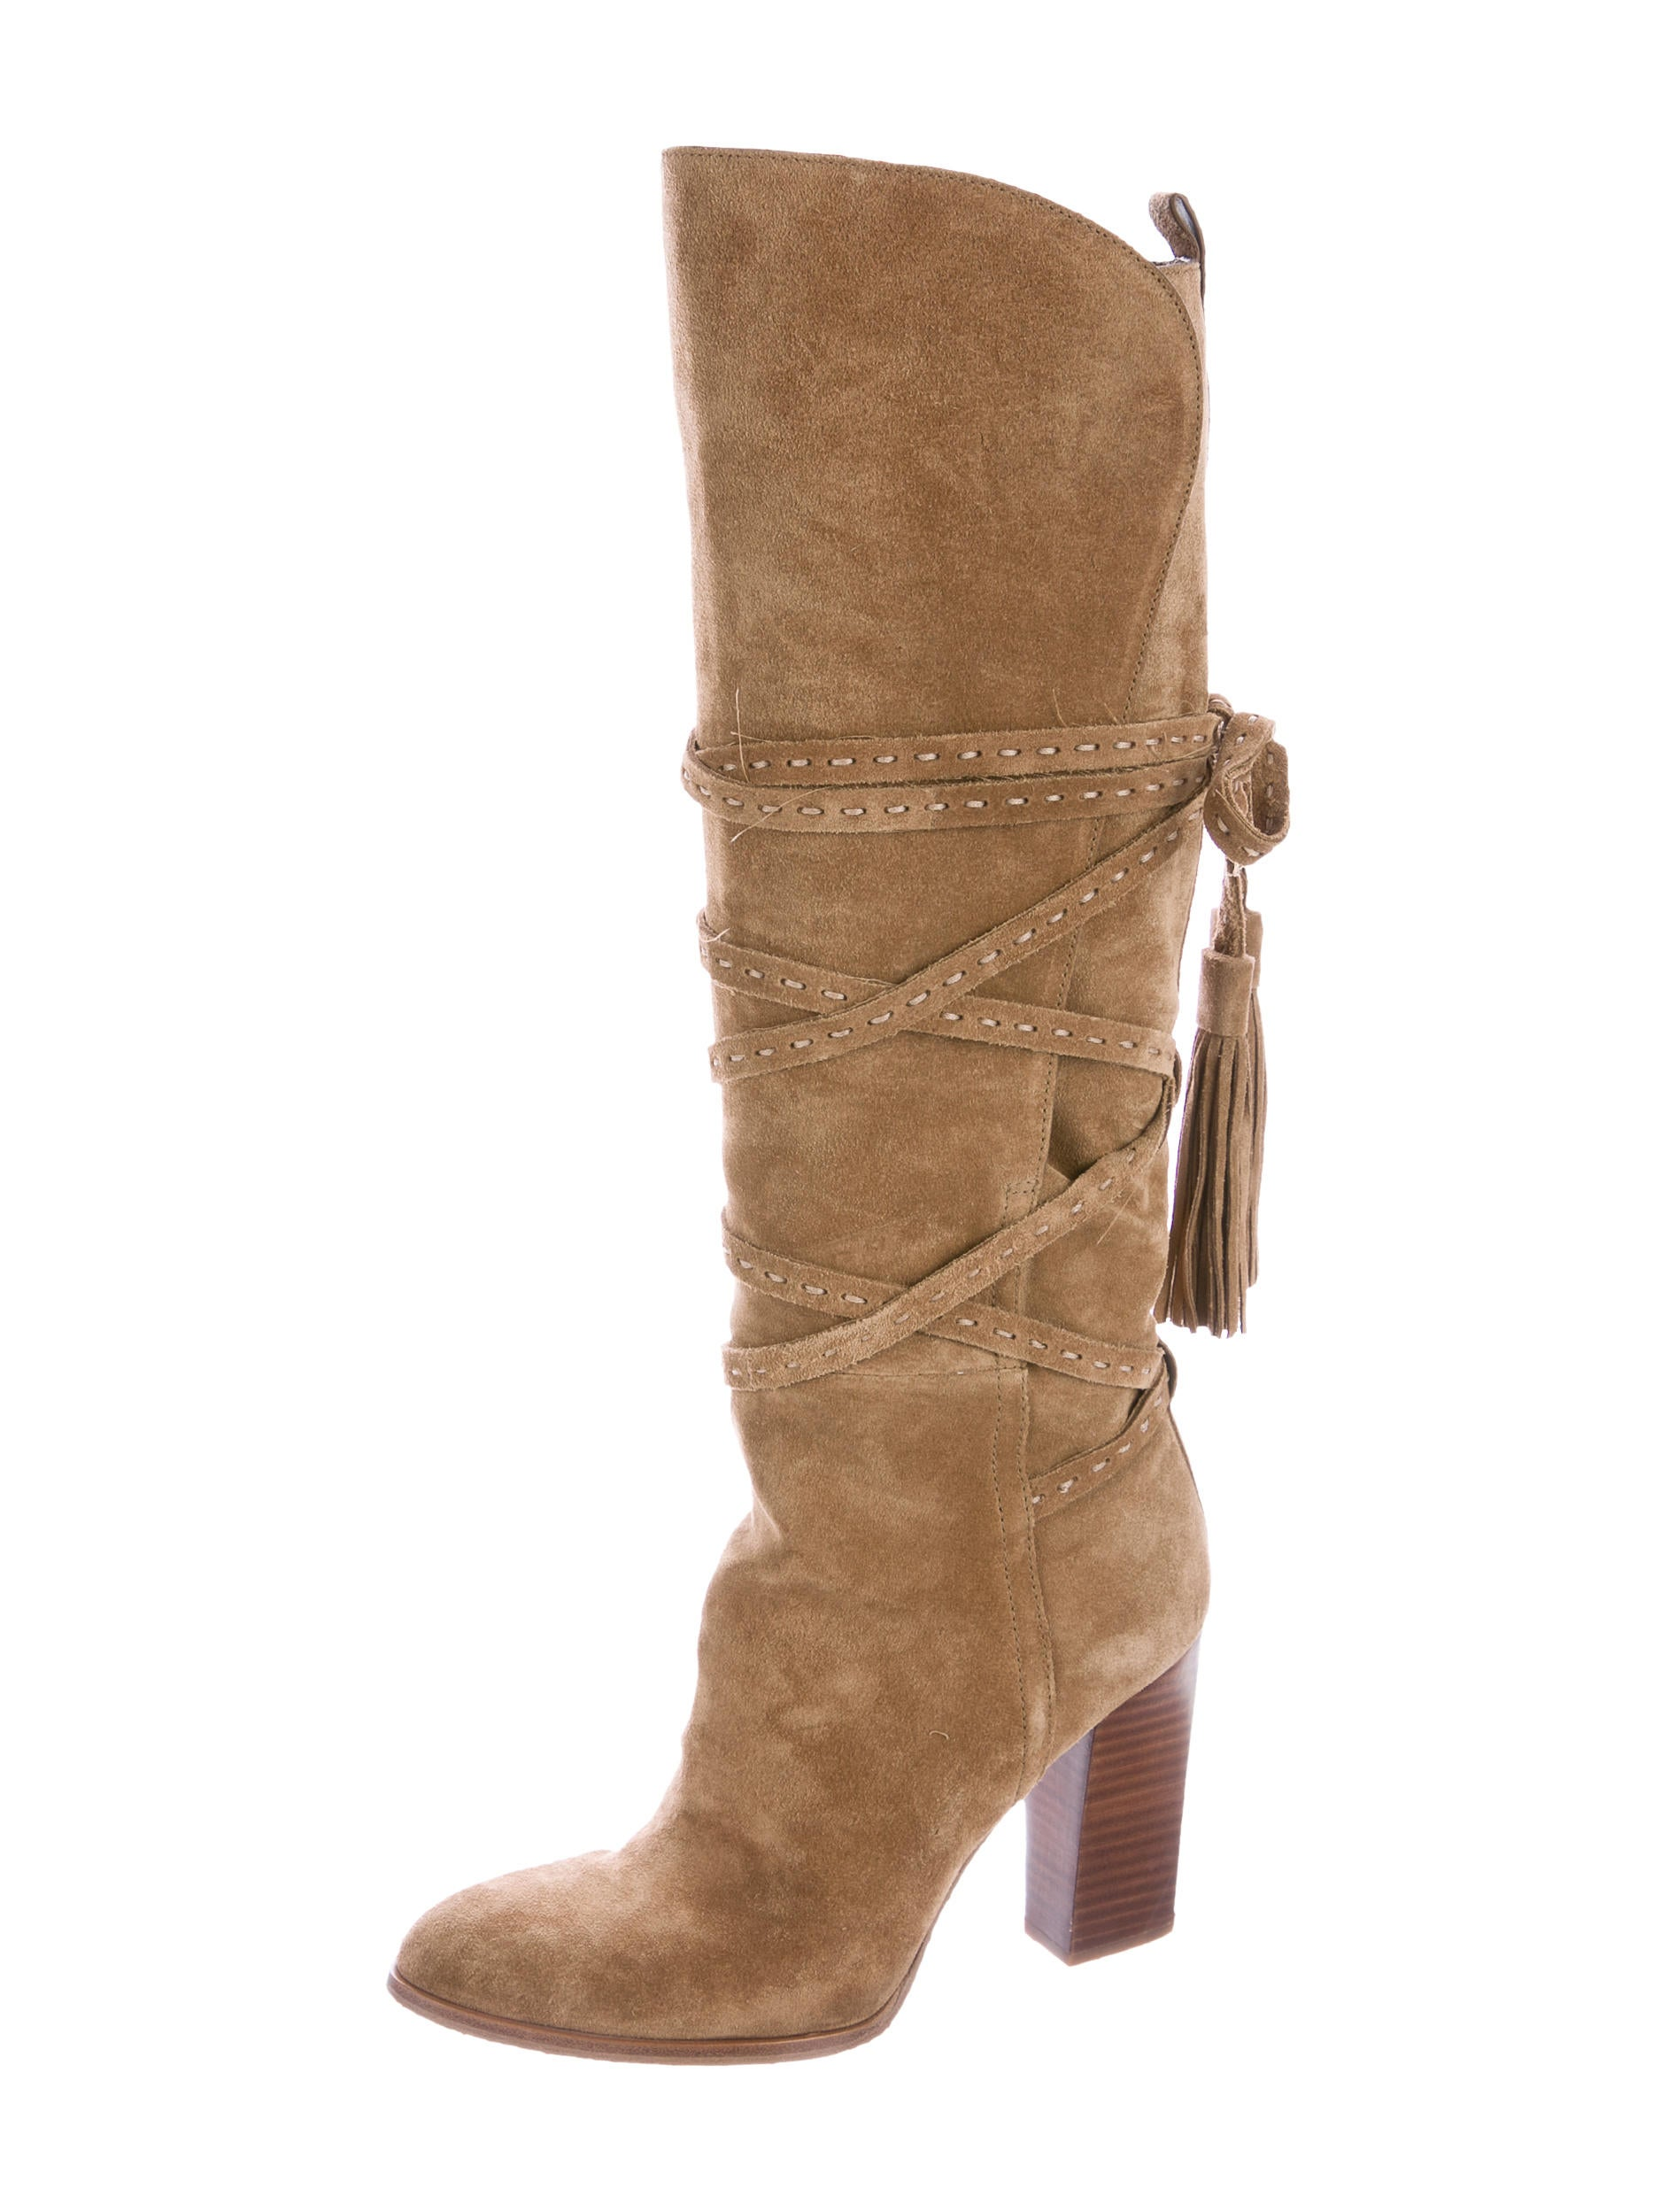 michael kors jessa suede knee high boots shoes